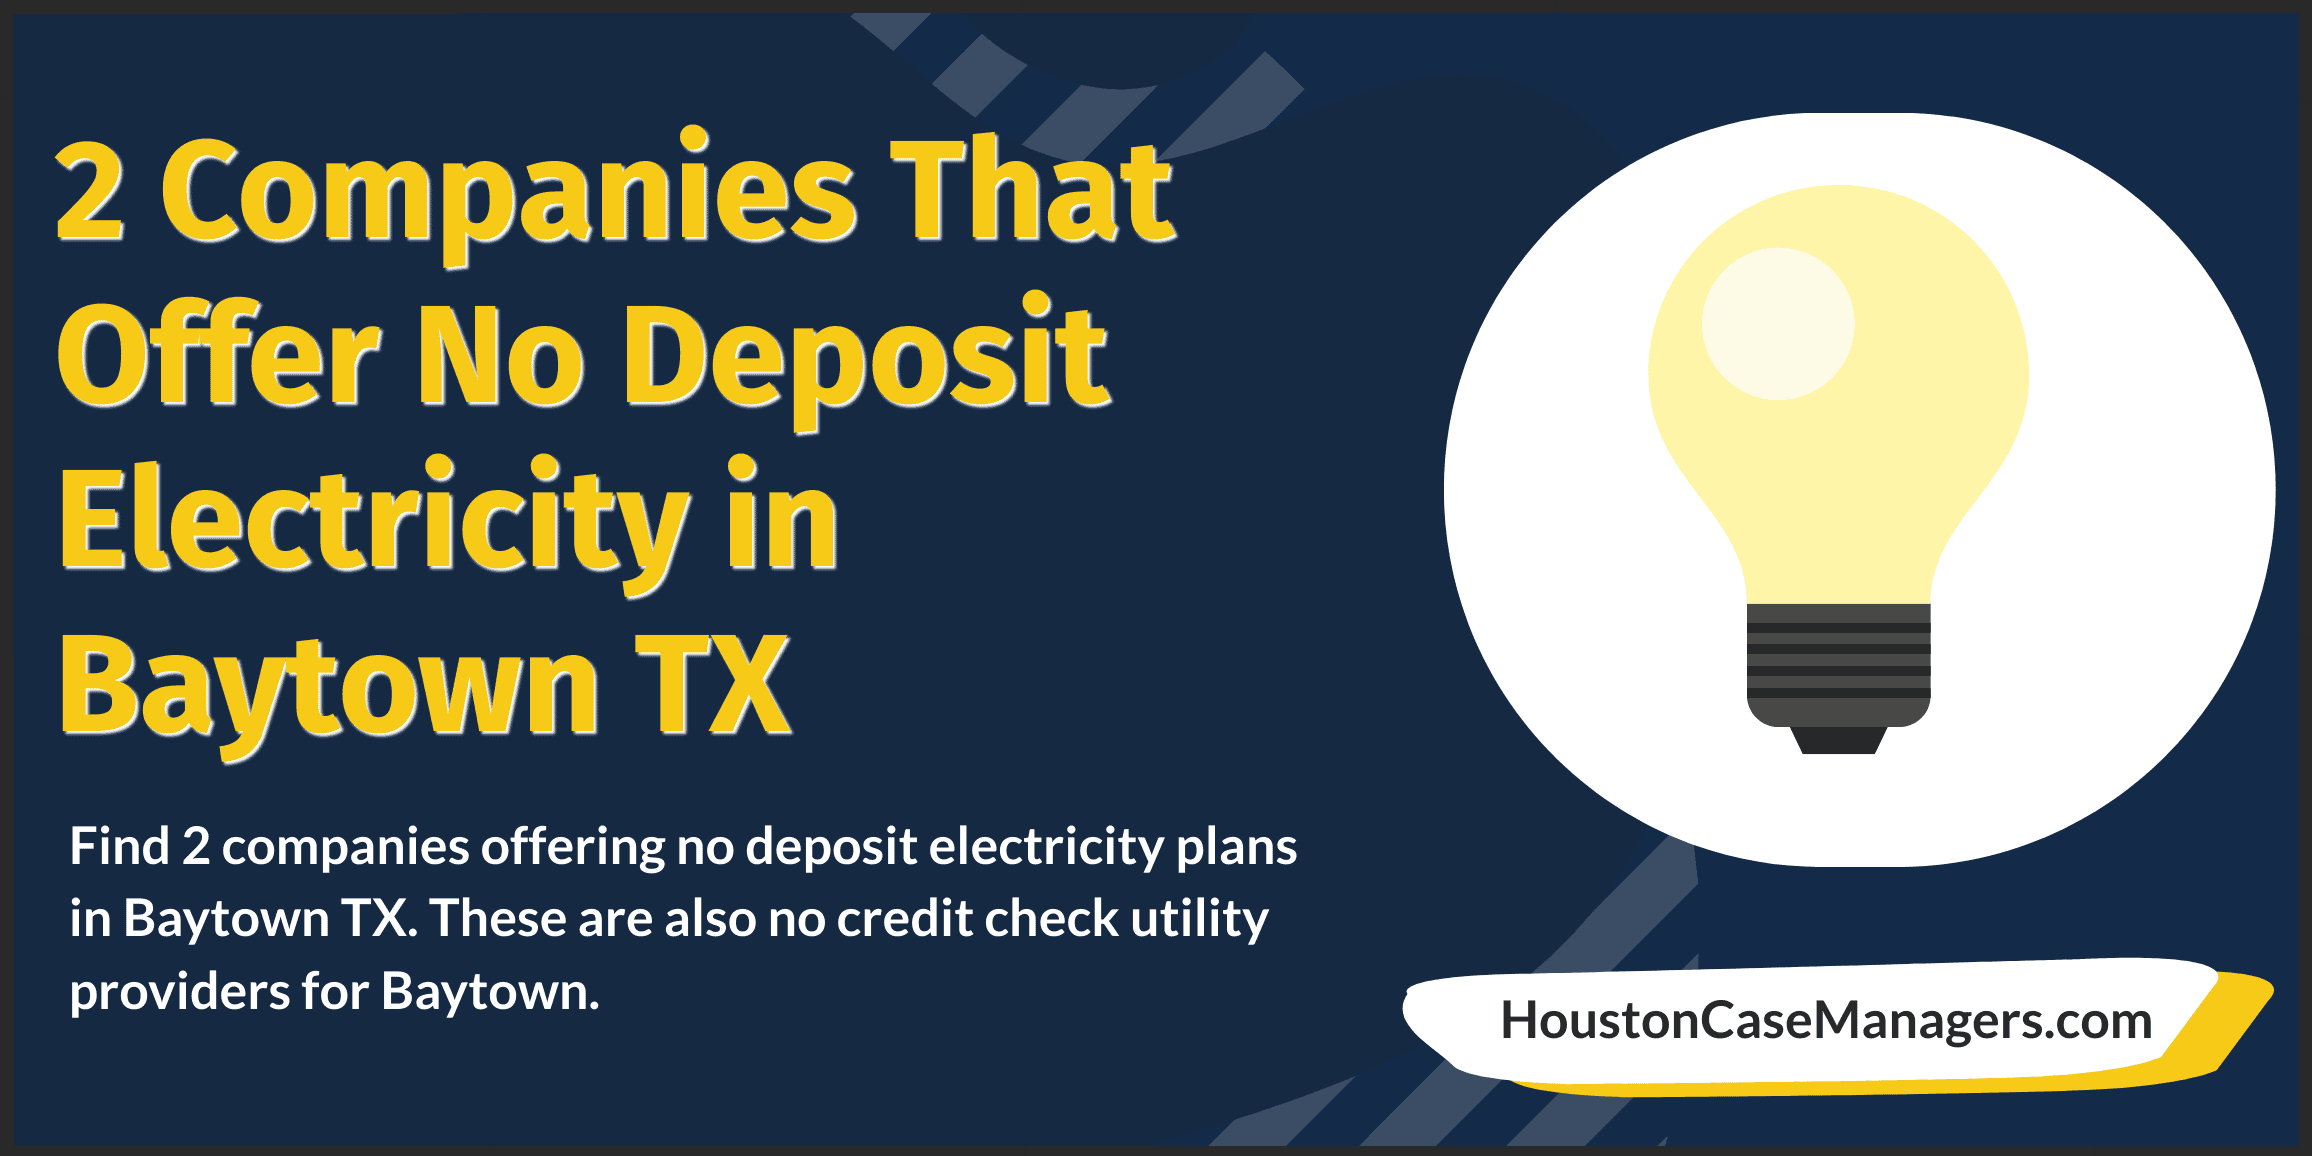 2 Companies That Offer No Deposit Electricity in Baytown TX